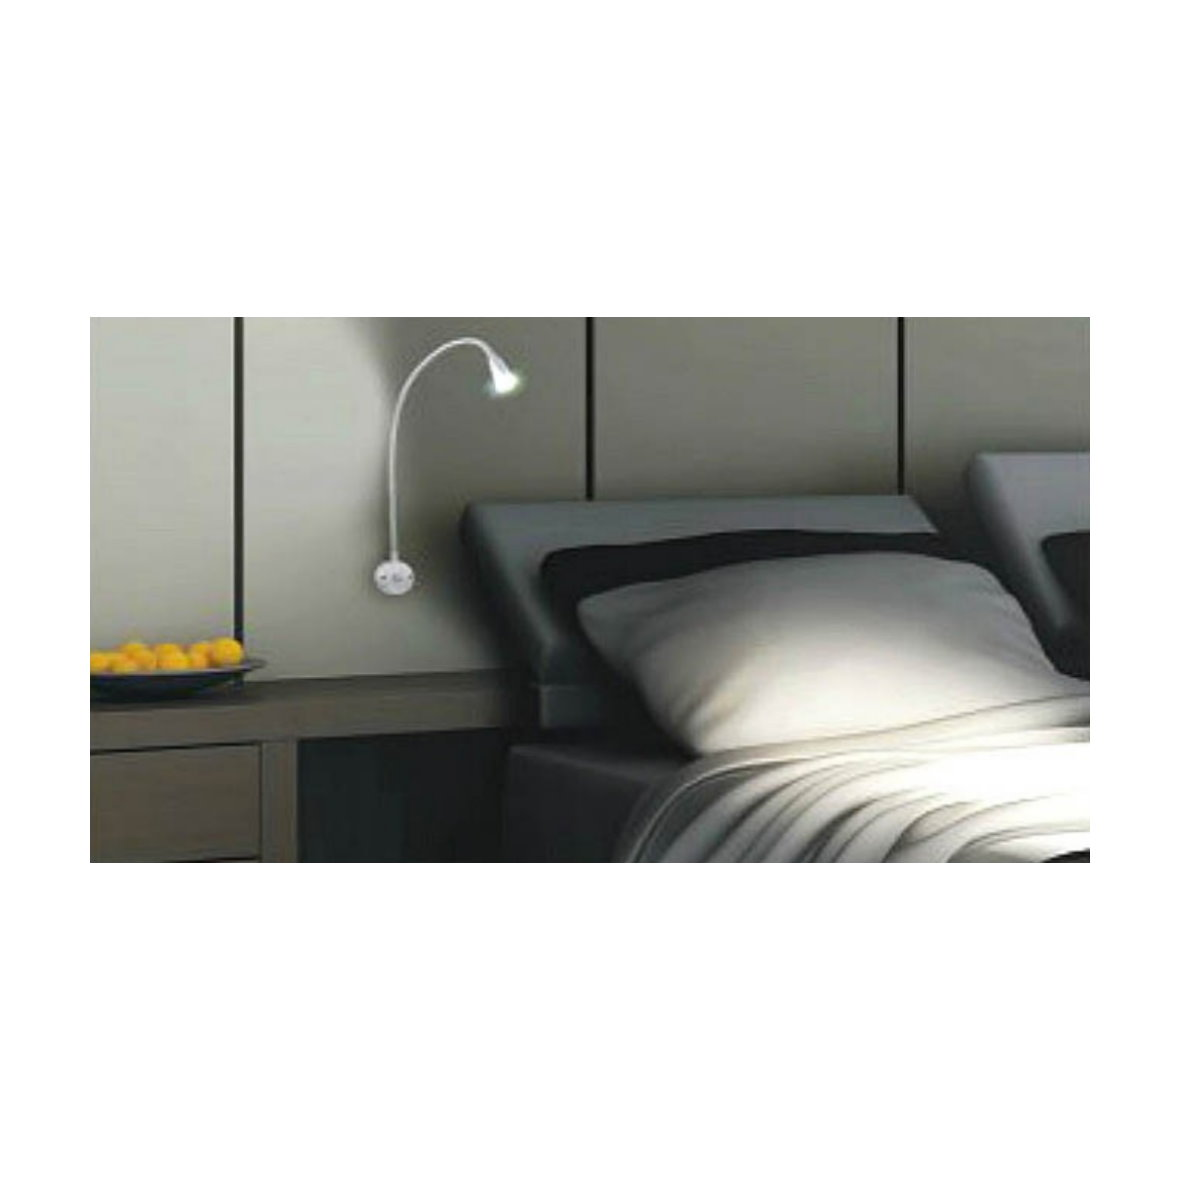 wandleuchte led schwanenhals inspirierendes design f r wohnm bel. Black Bedroom Furniture Sets. Home Design Ideas